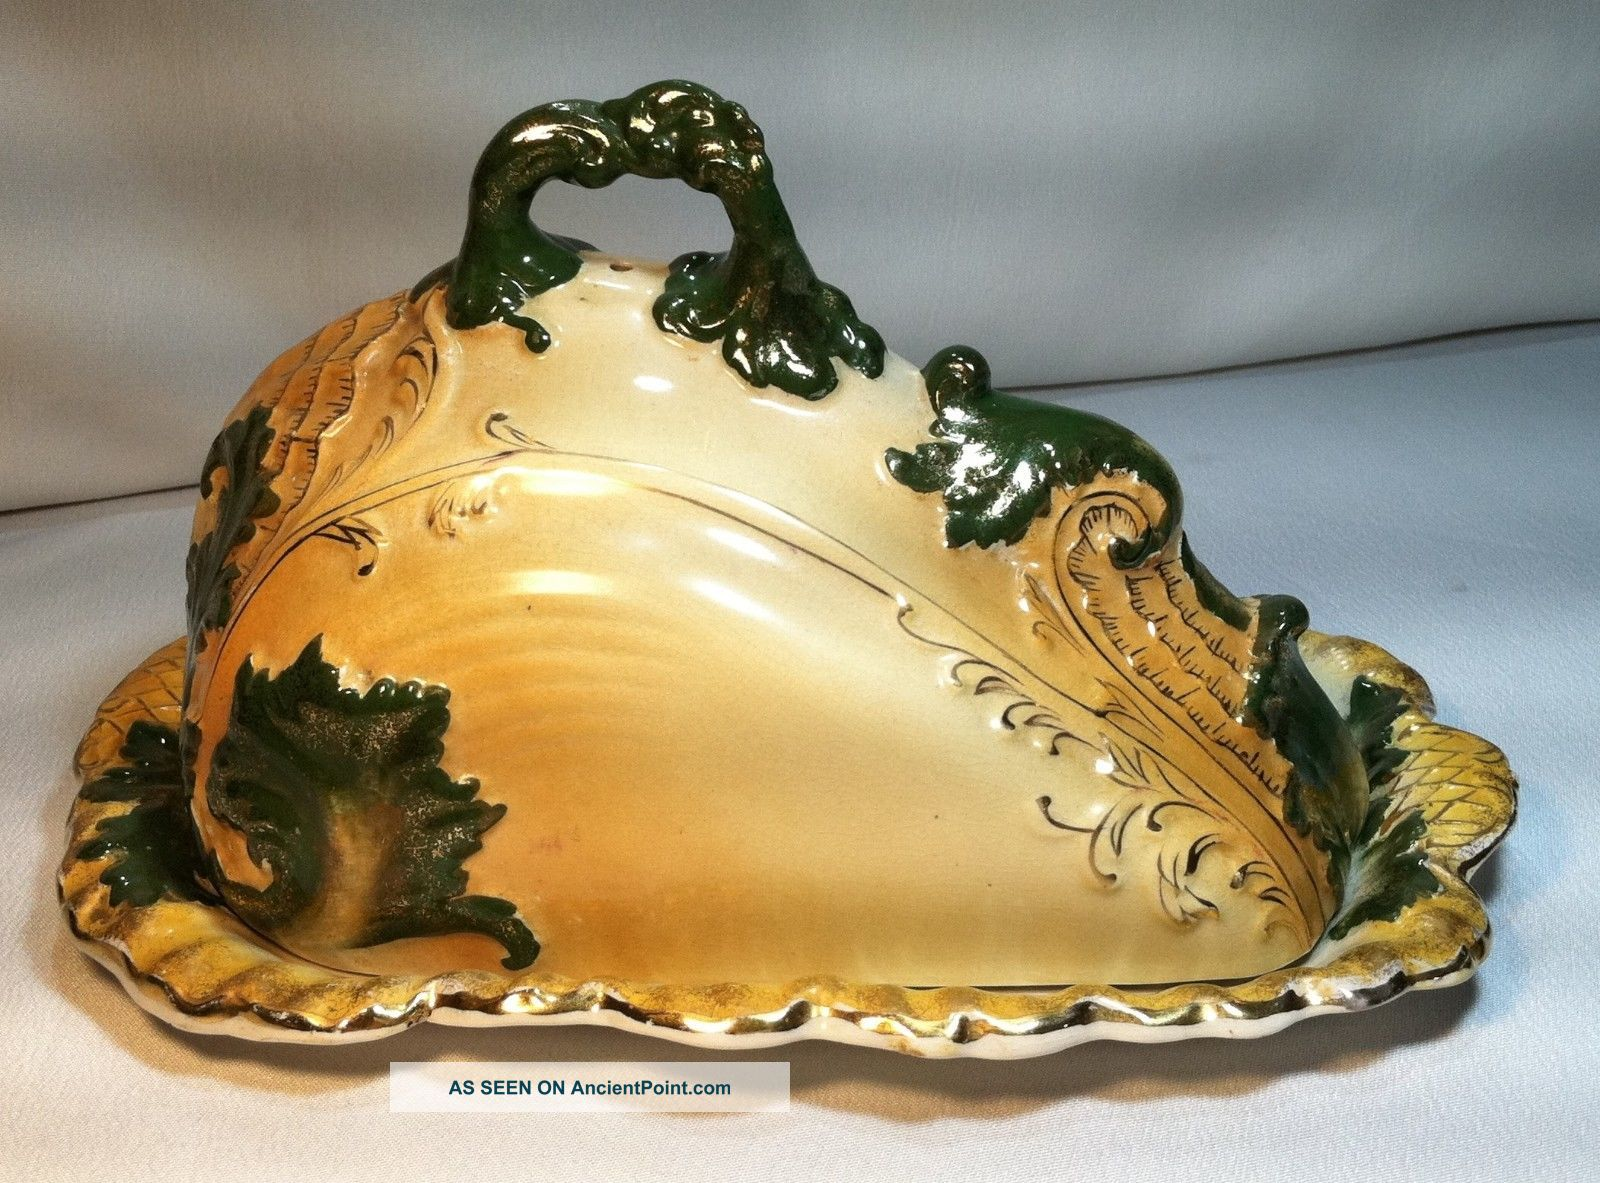 Antique Large Victorian Porcelain Covered Cheese Butter Tray Dish Shell Embossed Platters & Trays photo